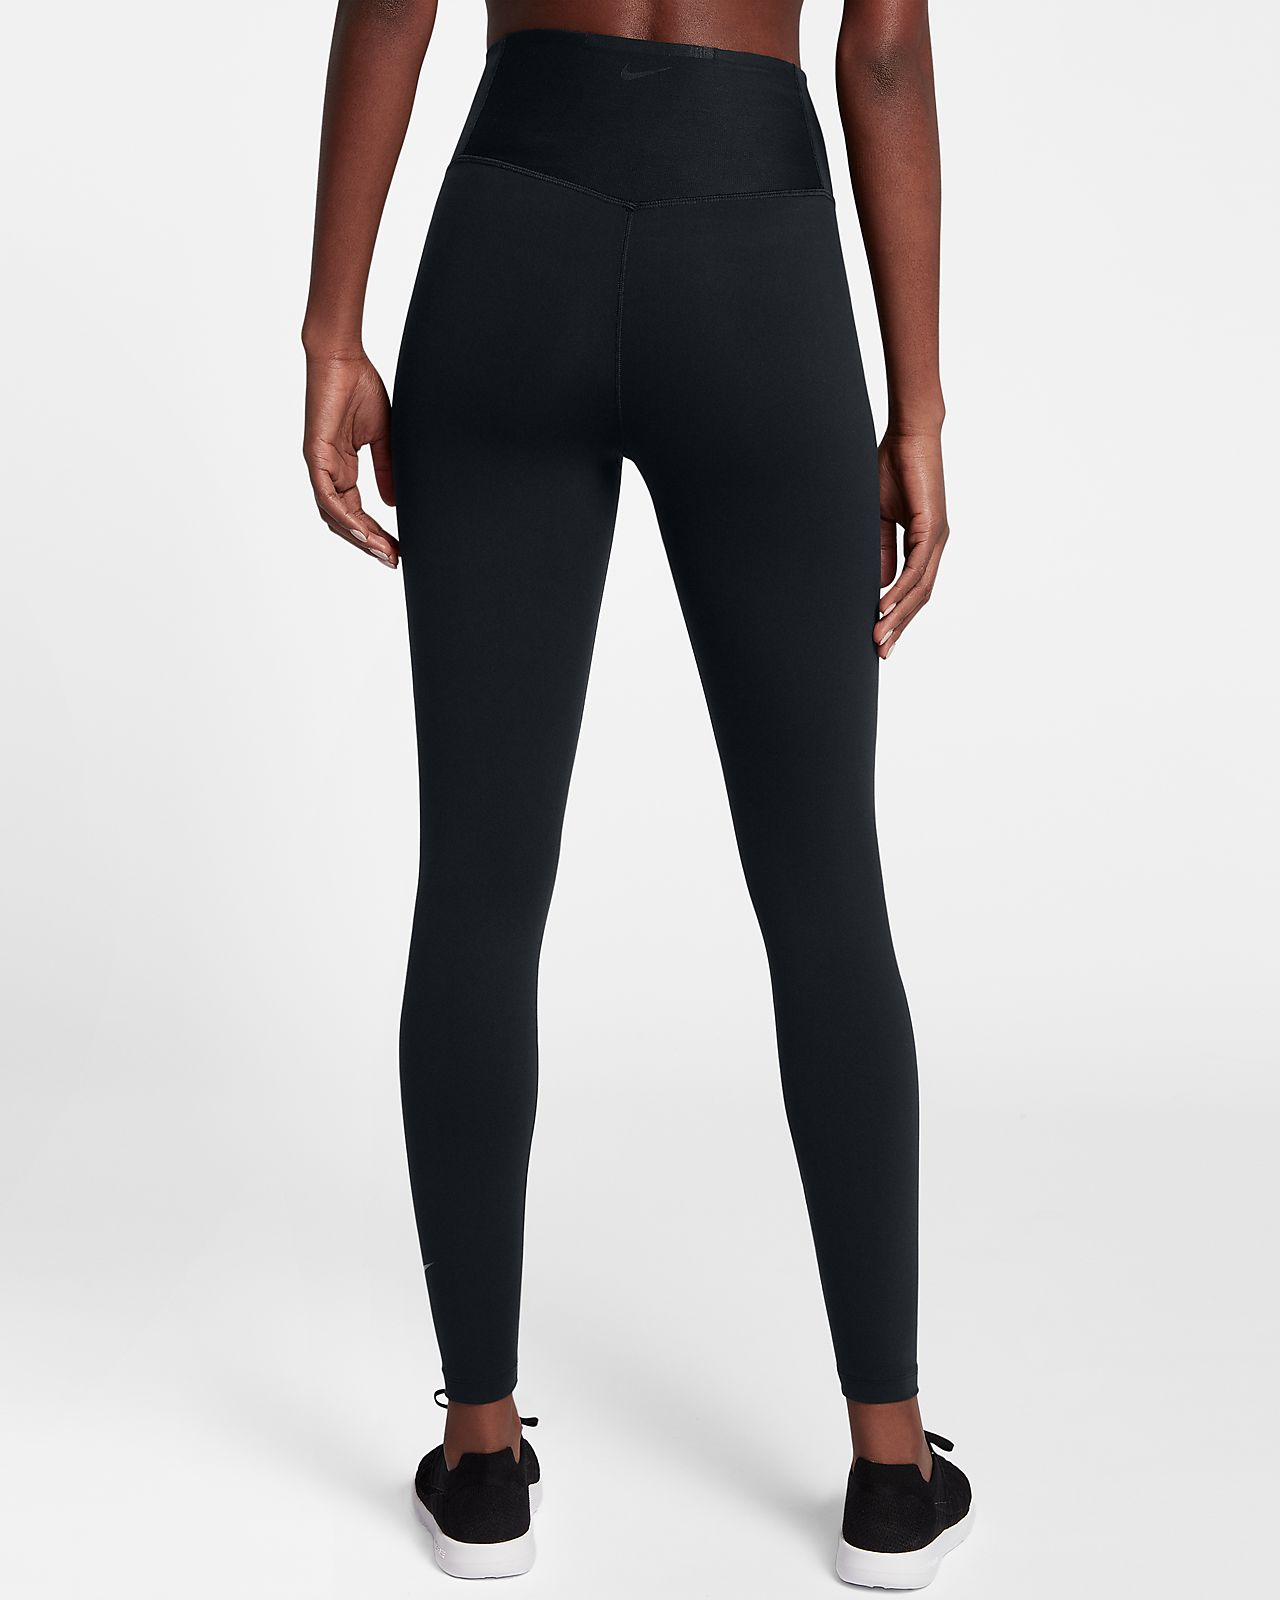 07fb365207185 Nike Sculpt Lux Women's High-Waist Training Tights. Nike.com GB